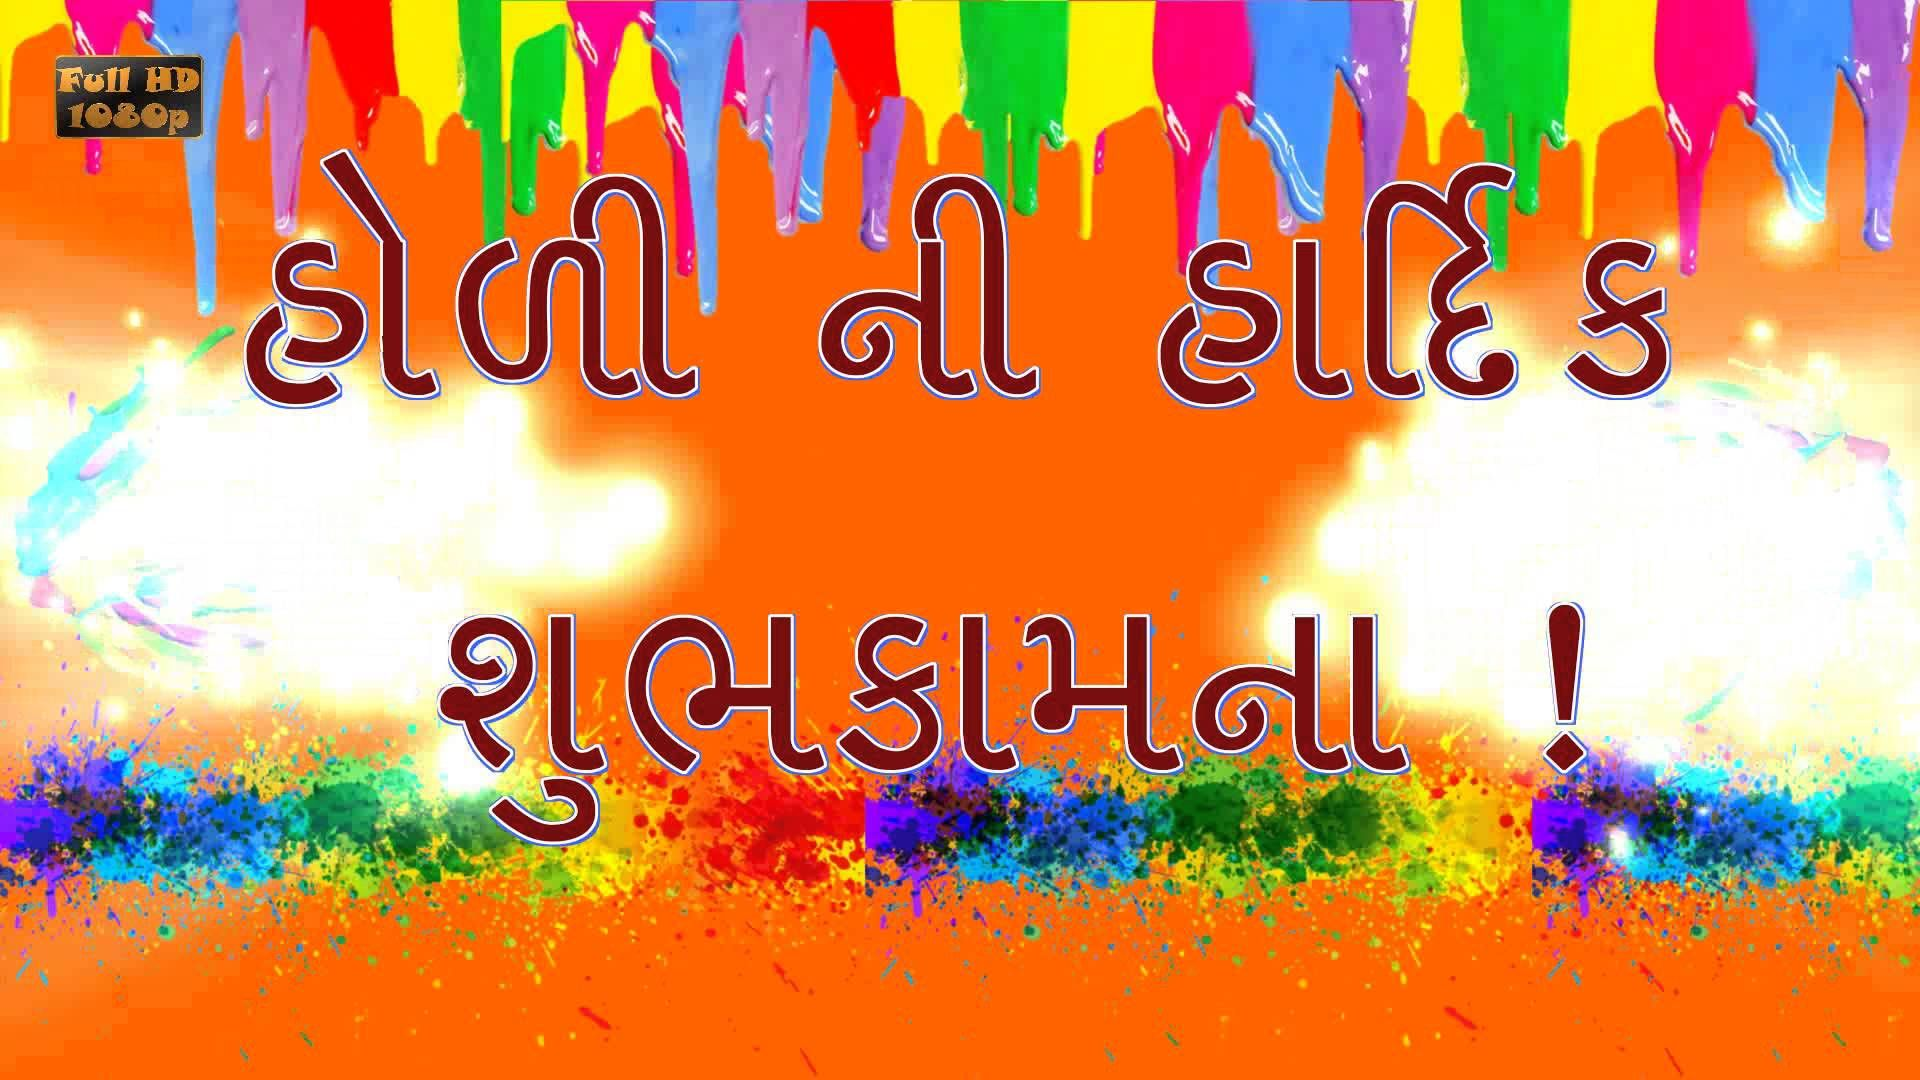 Gujarati holi wishes for whatsapp happy holi greetings in gujarati gujarati holi wishes for whatsapp happy holi greetings in gujarati m4hsunfo